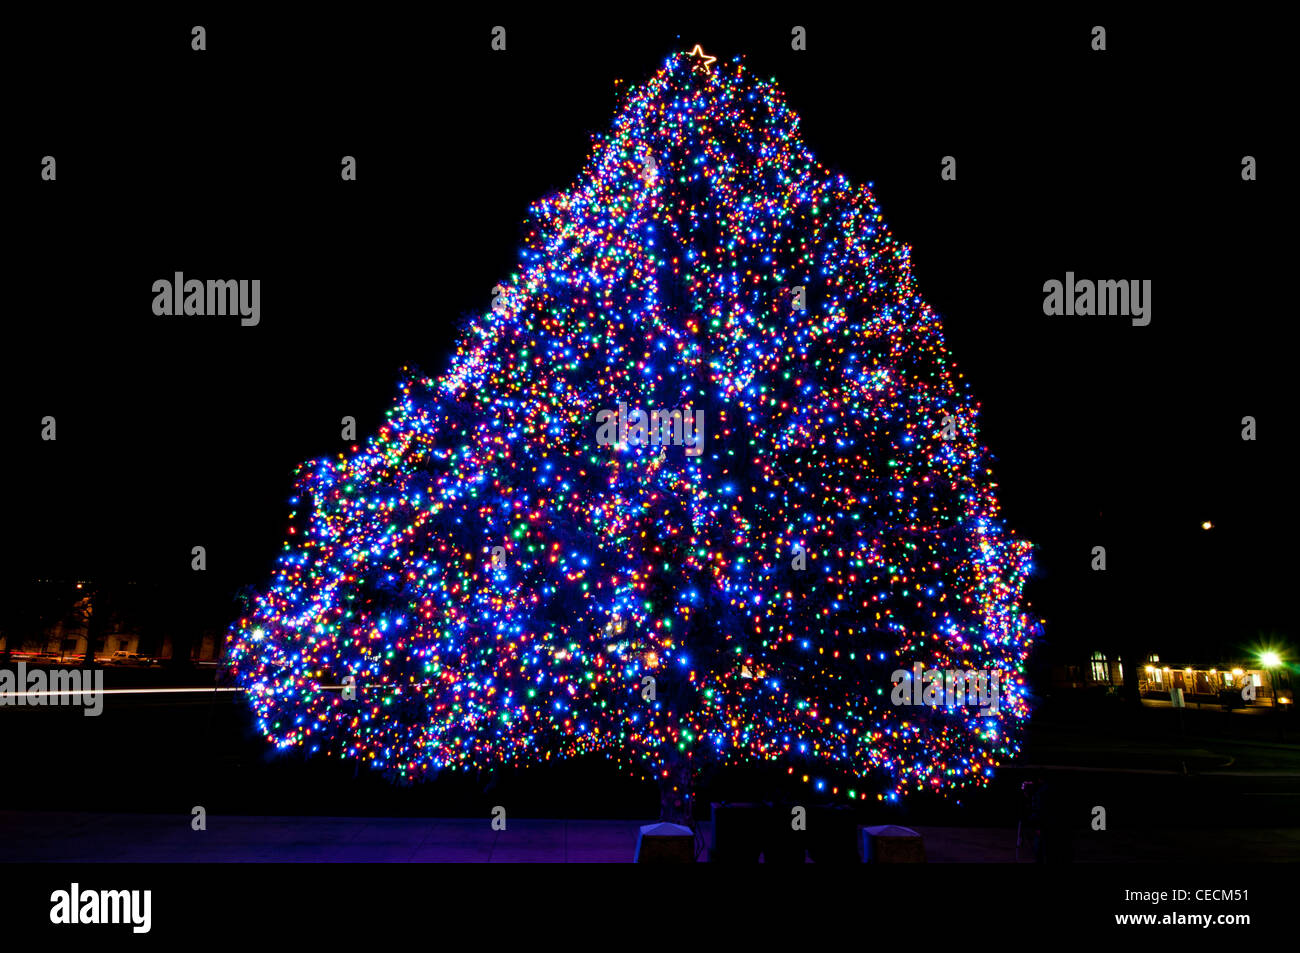 Idaho State official Christmas tree - 2011 - Stock Image